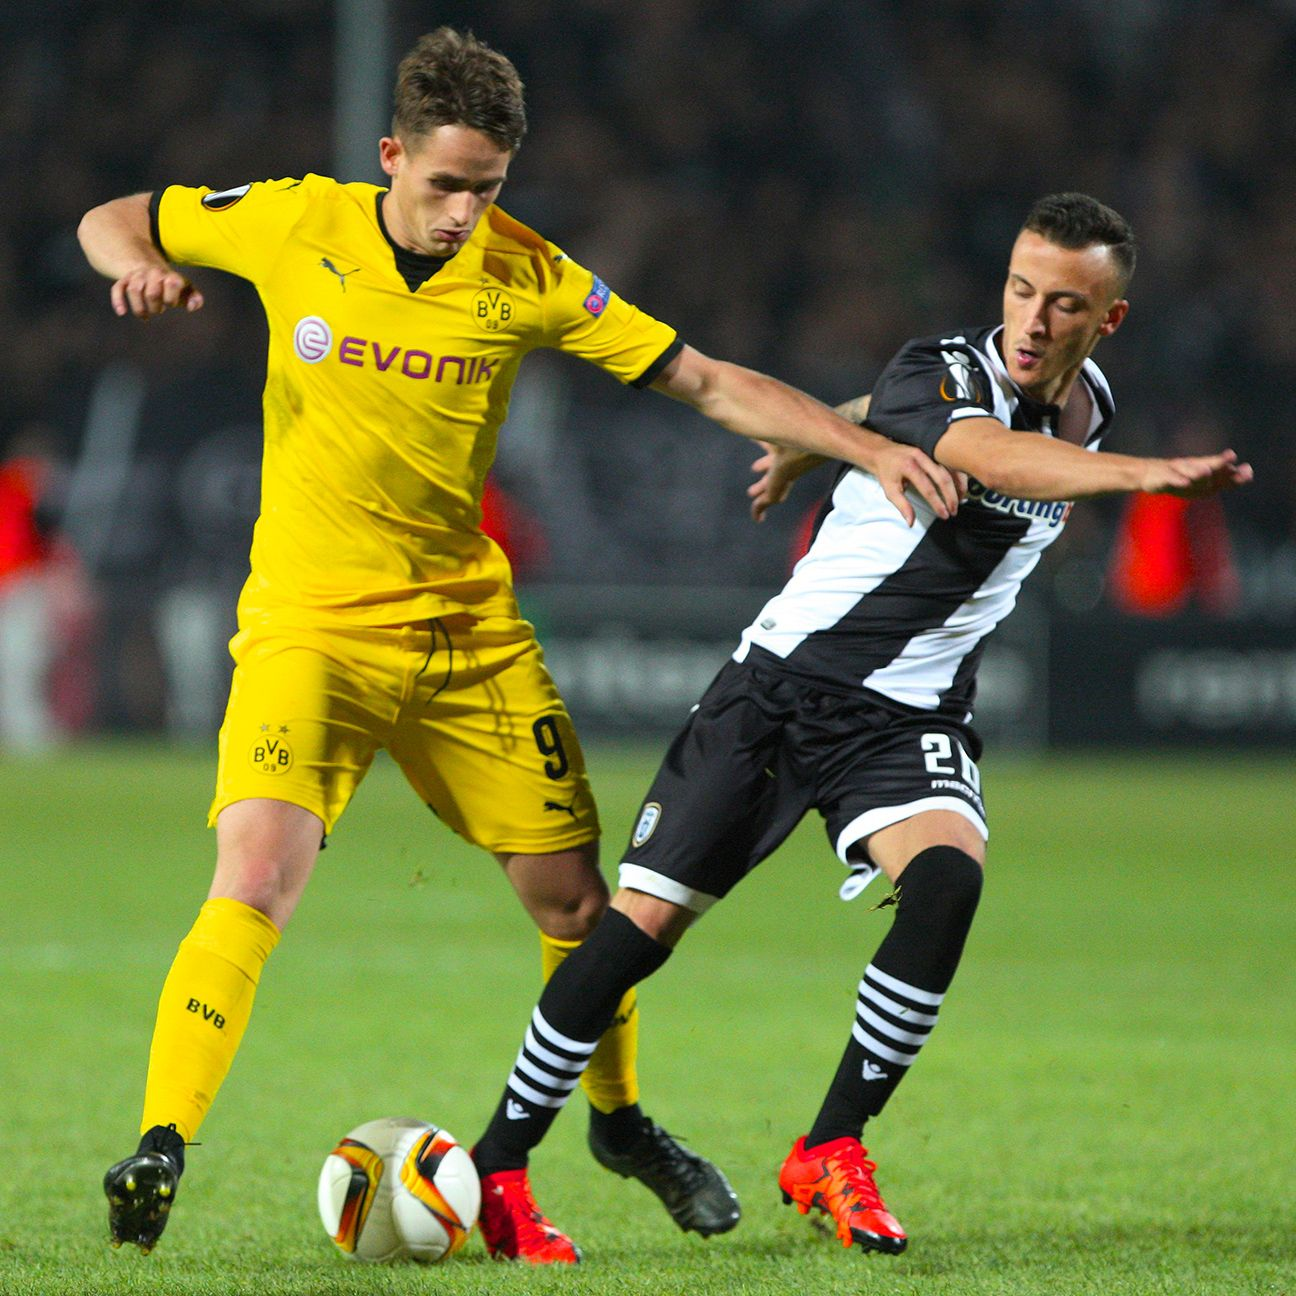 Adnan Januzaj's performance against PAOK was riddled with mistakes.